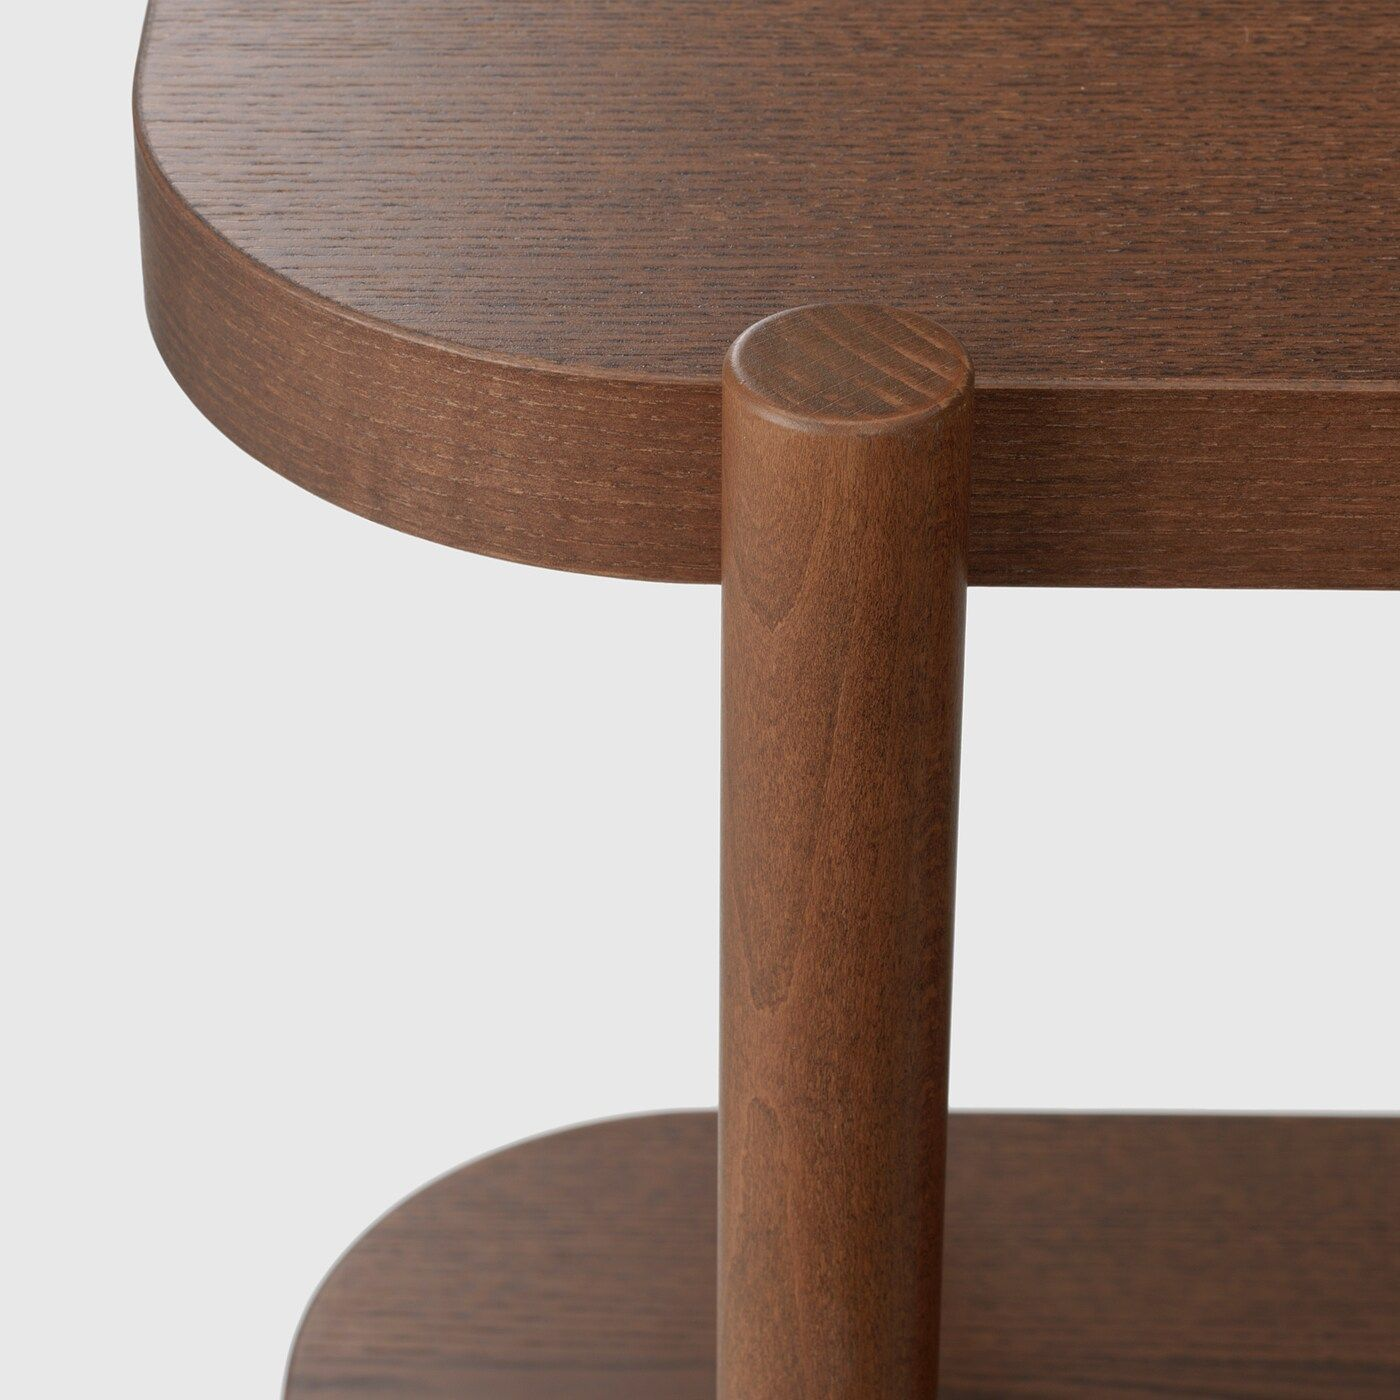 Ikea Listerby A Ablagetisch Ikea Listerby In 2020 Console Table Ikea Wood Finish [ 1400 x 1400 Pixel ]